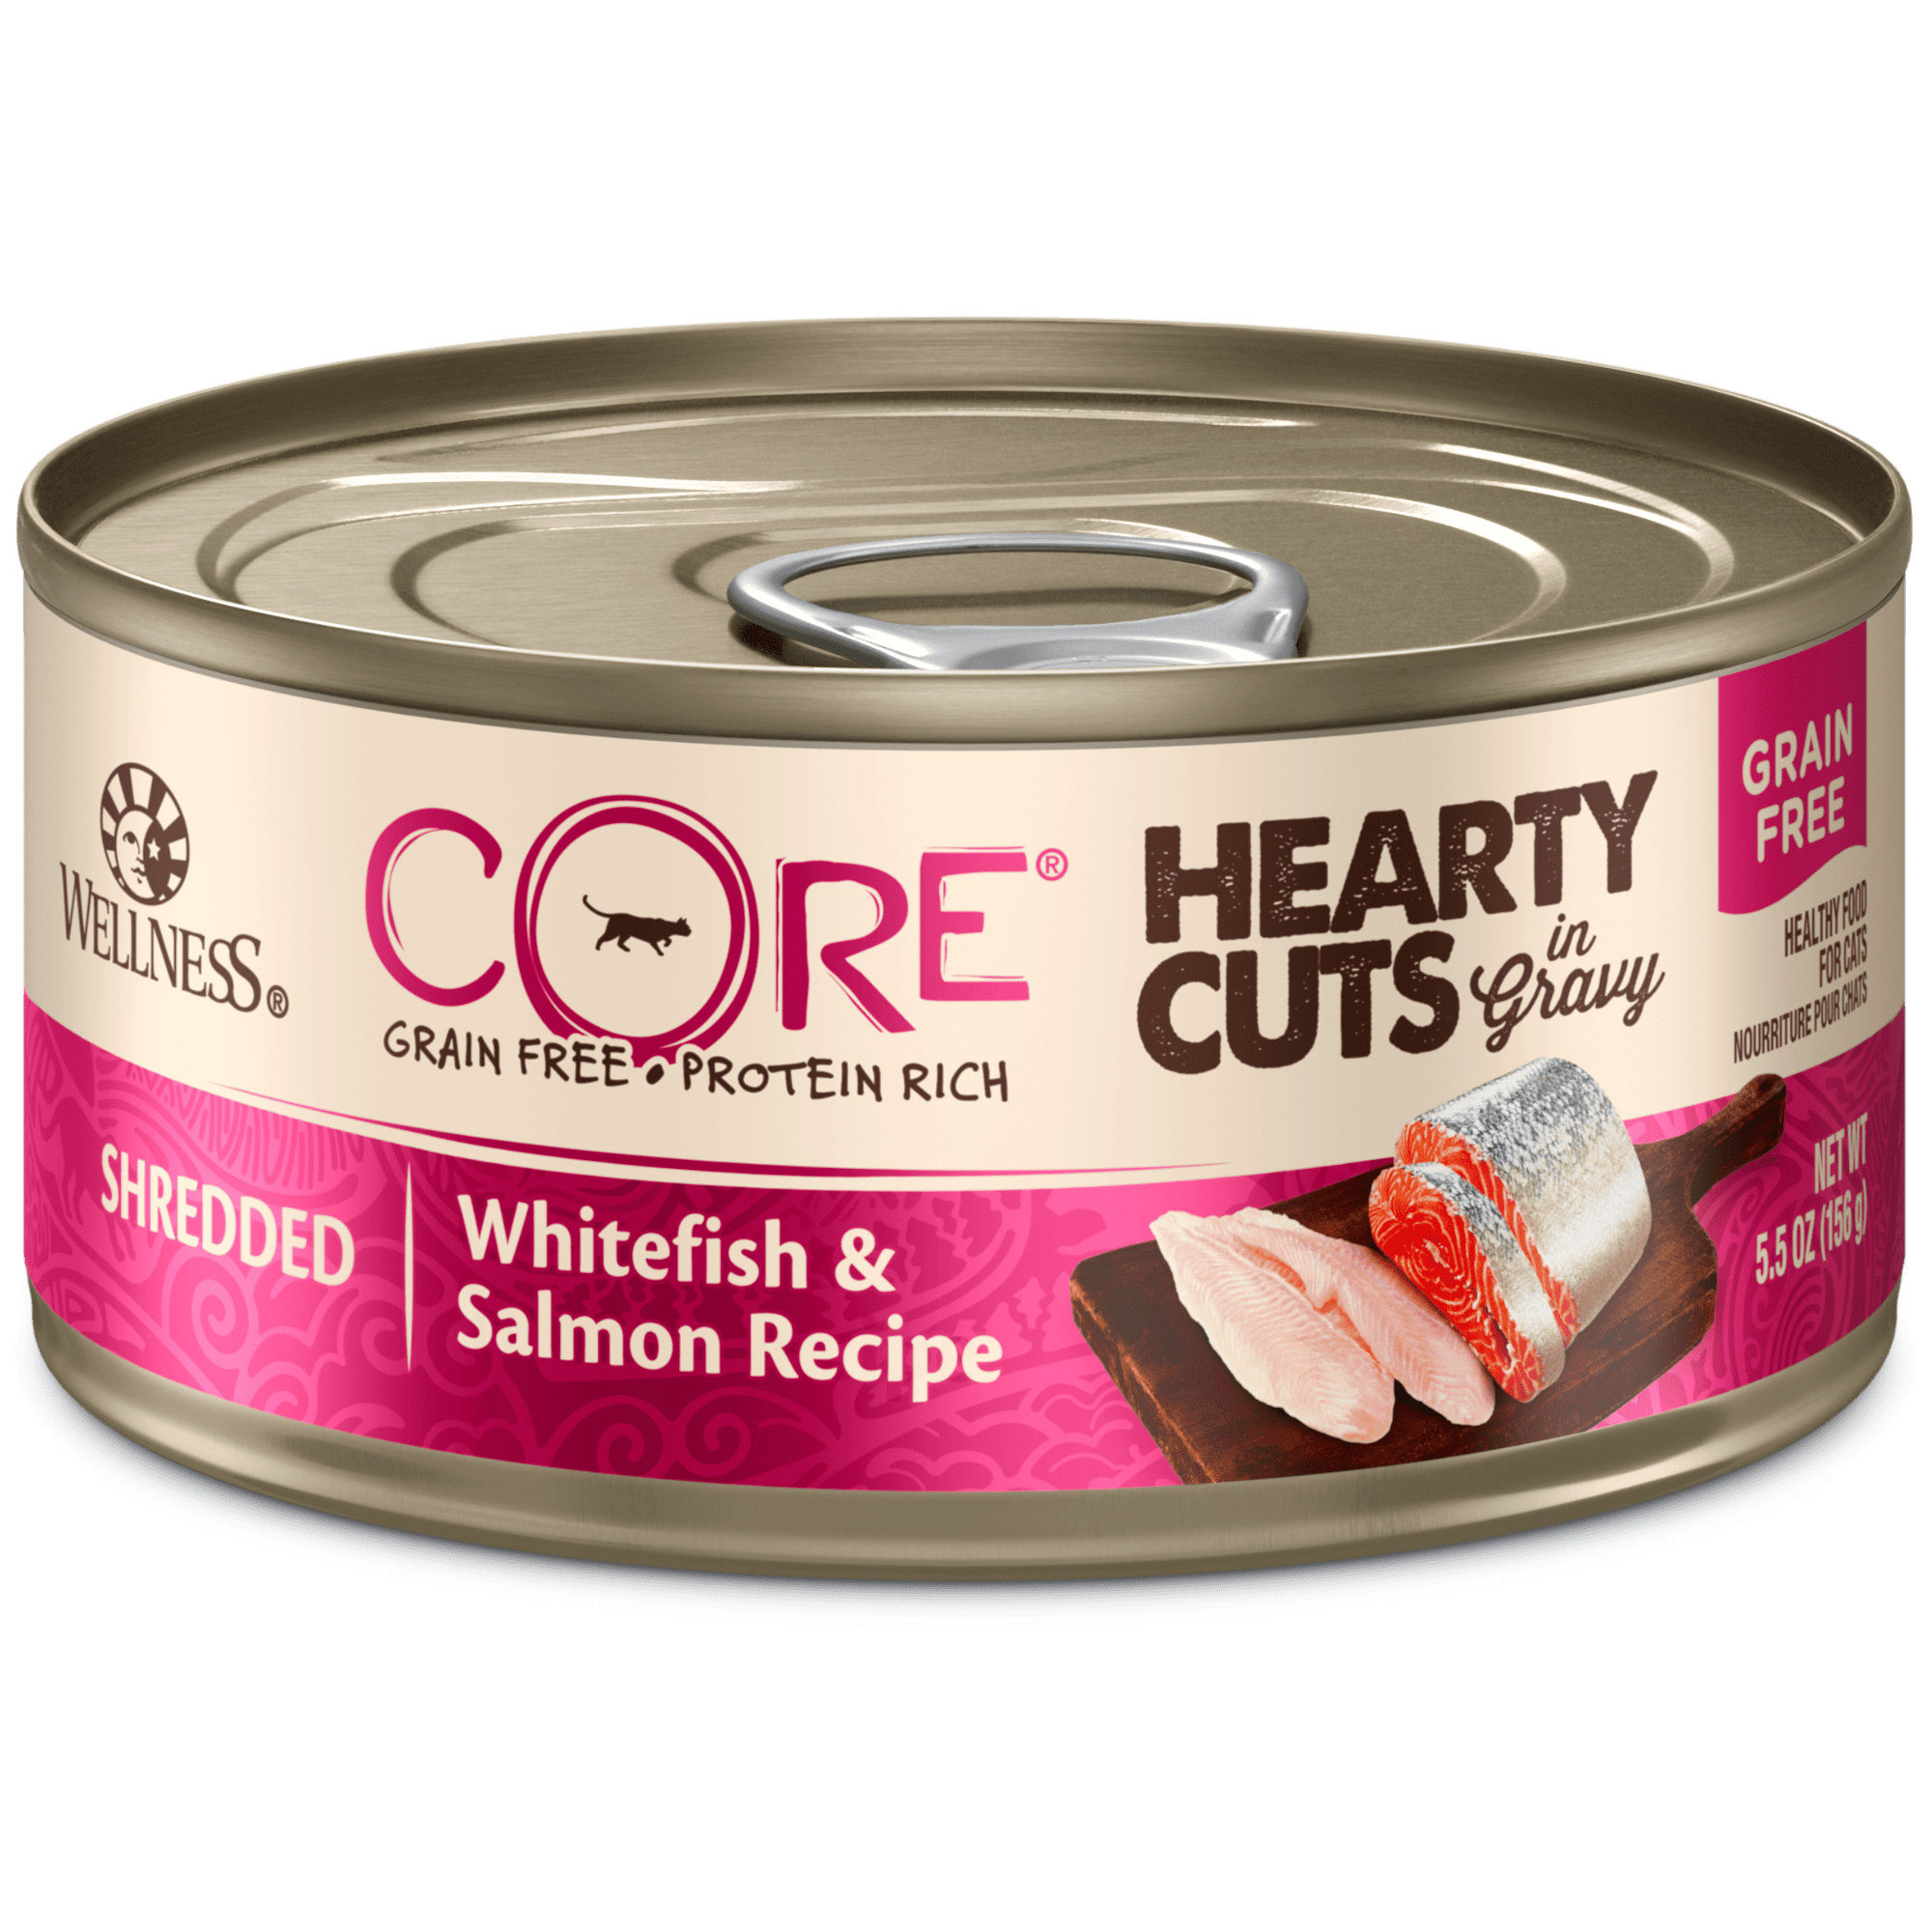 Wellness Core Cat Food New Canned Recipe